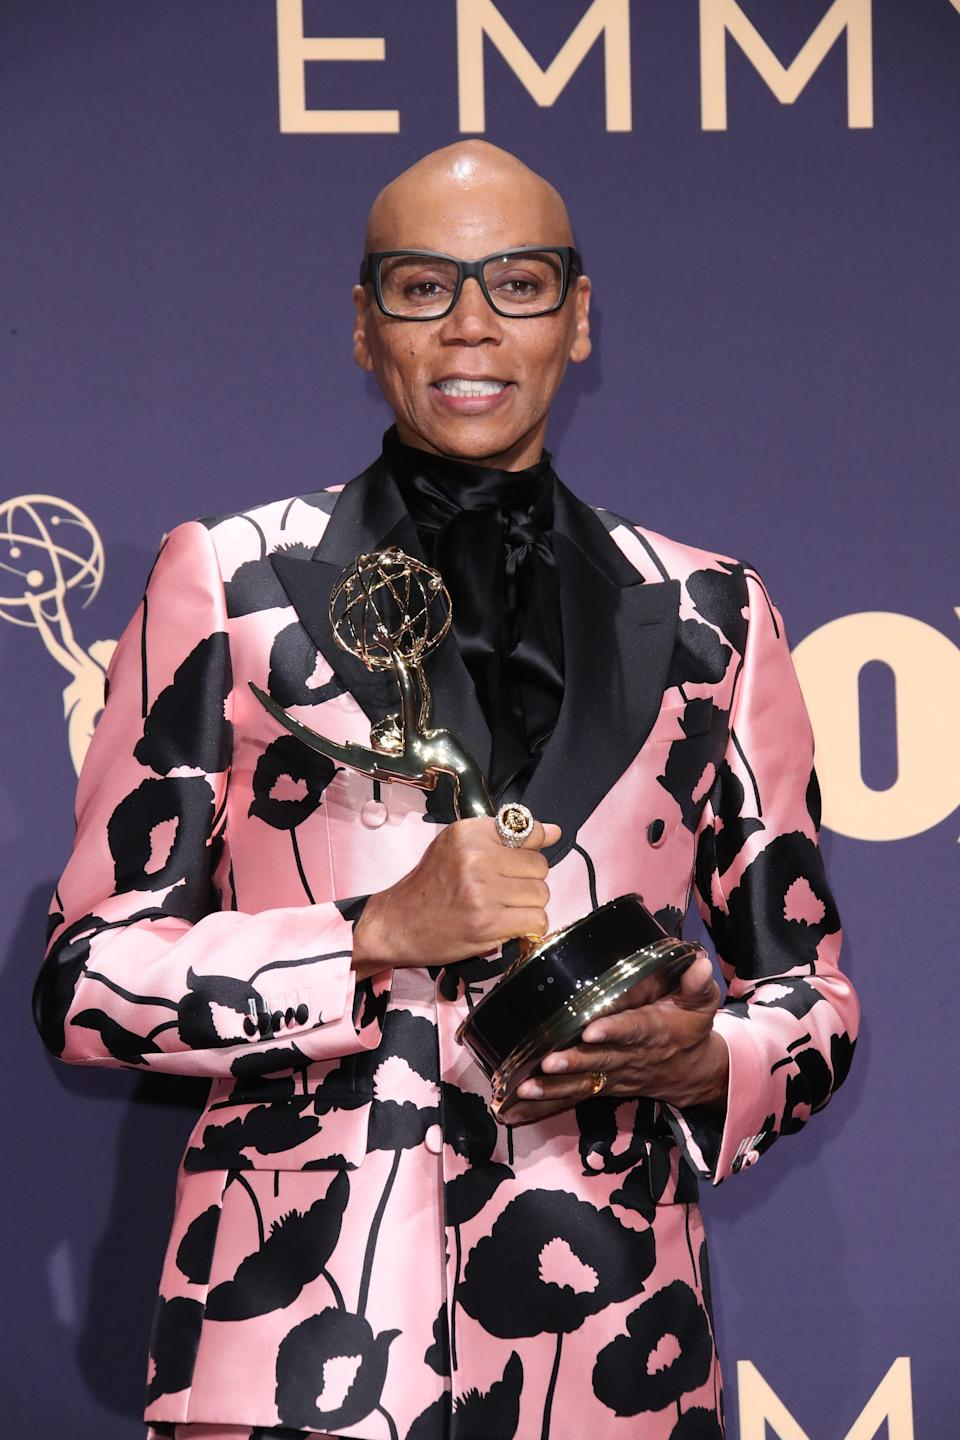 """RuPaul poses for photos after """"RuPaul's Drag Race"""" won the Emmy for outstanding competition program at the 2019 ceremony."""